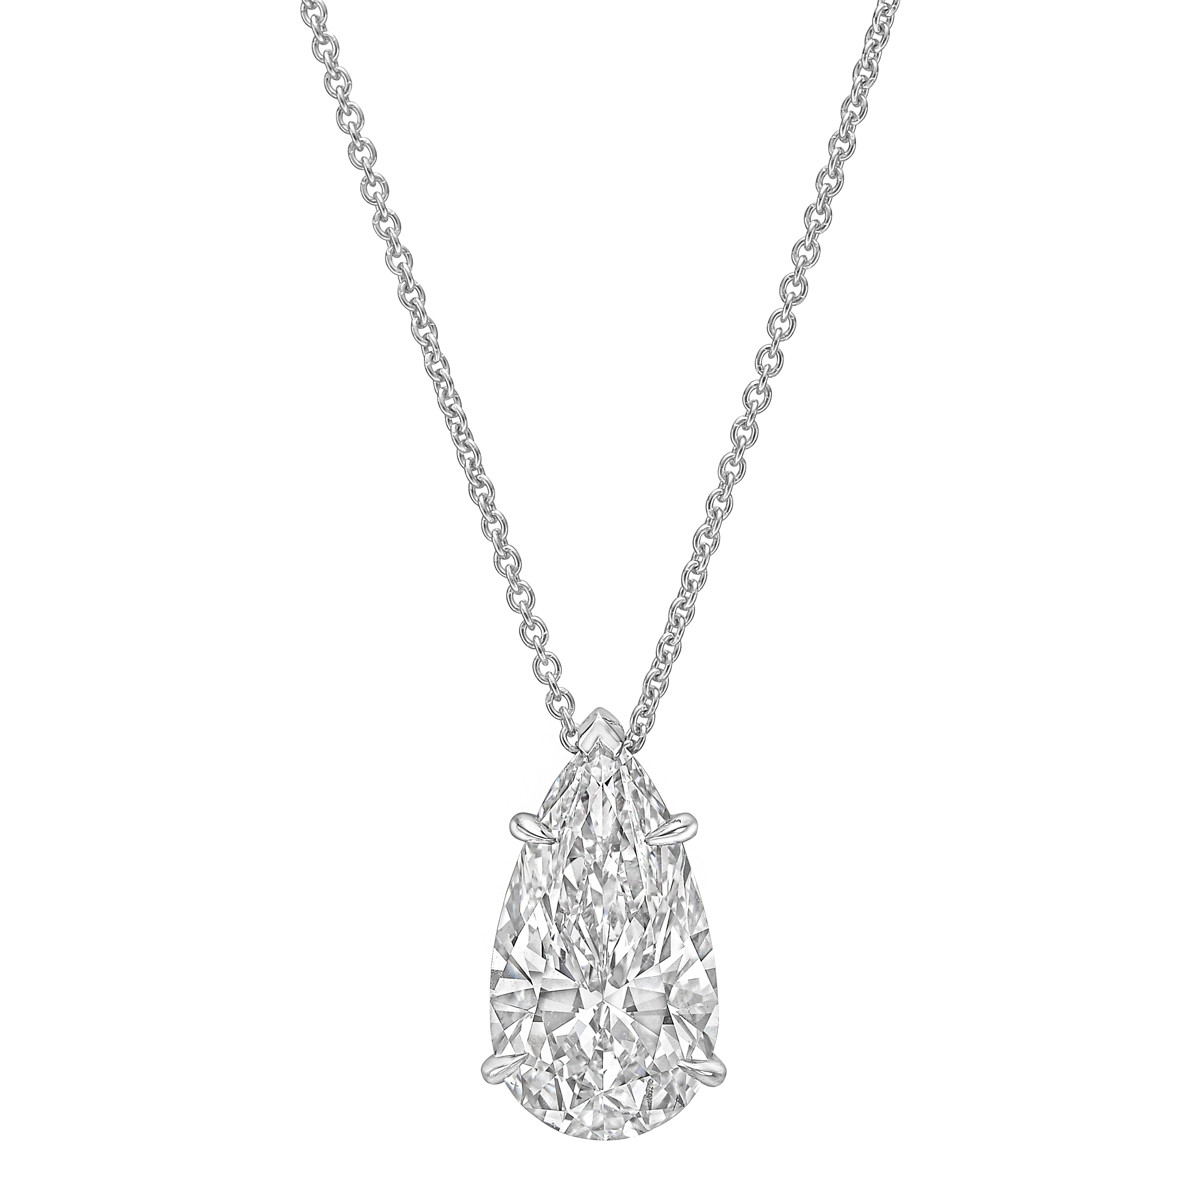 5.07ct Pear-Shaped Diamond Solitaire Pendant